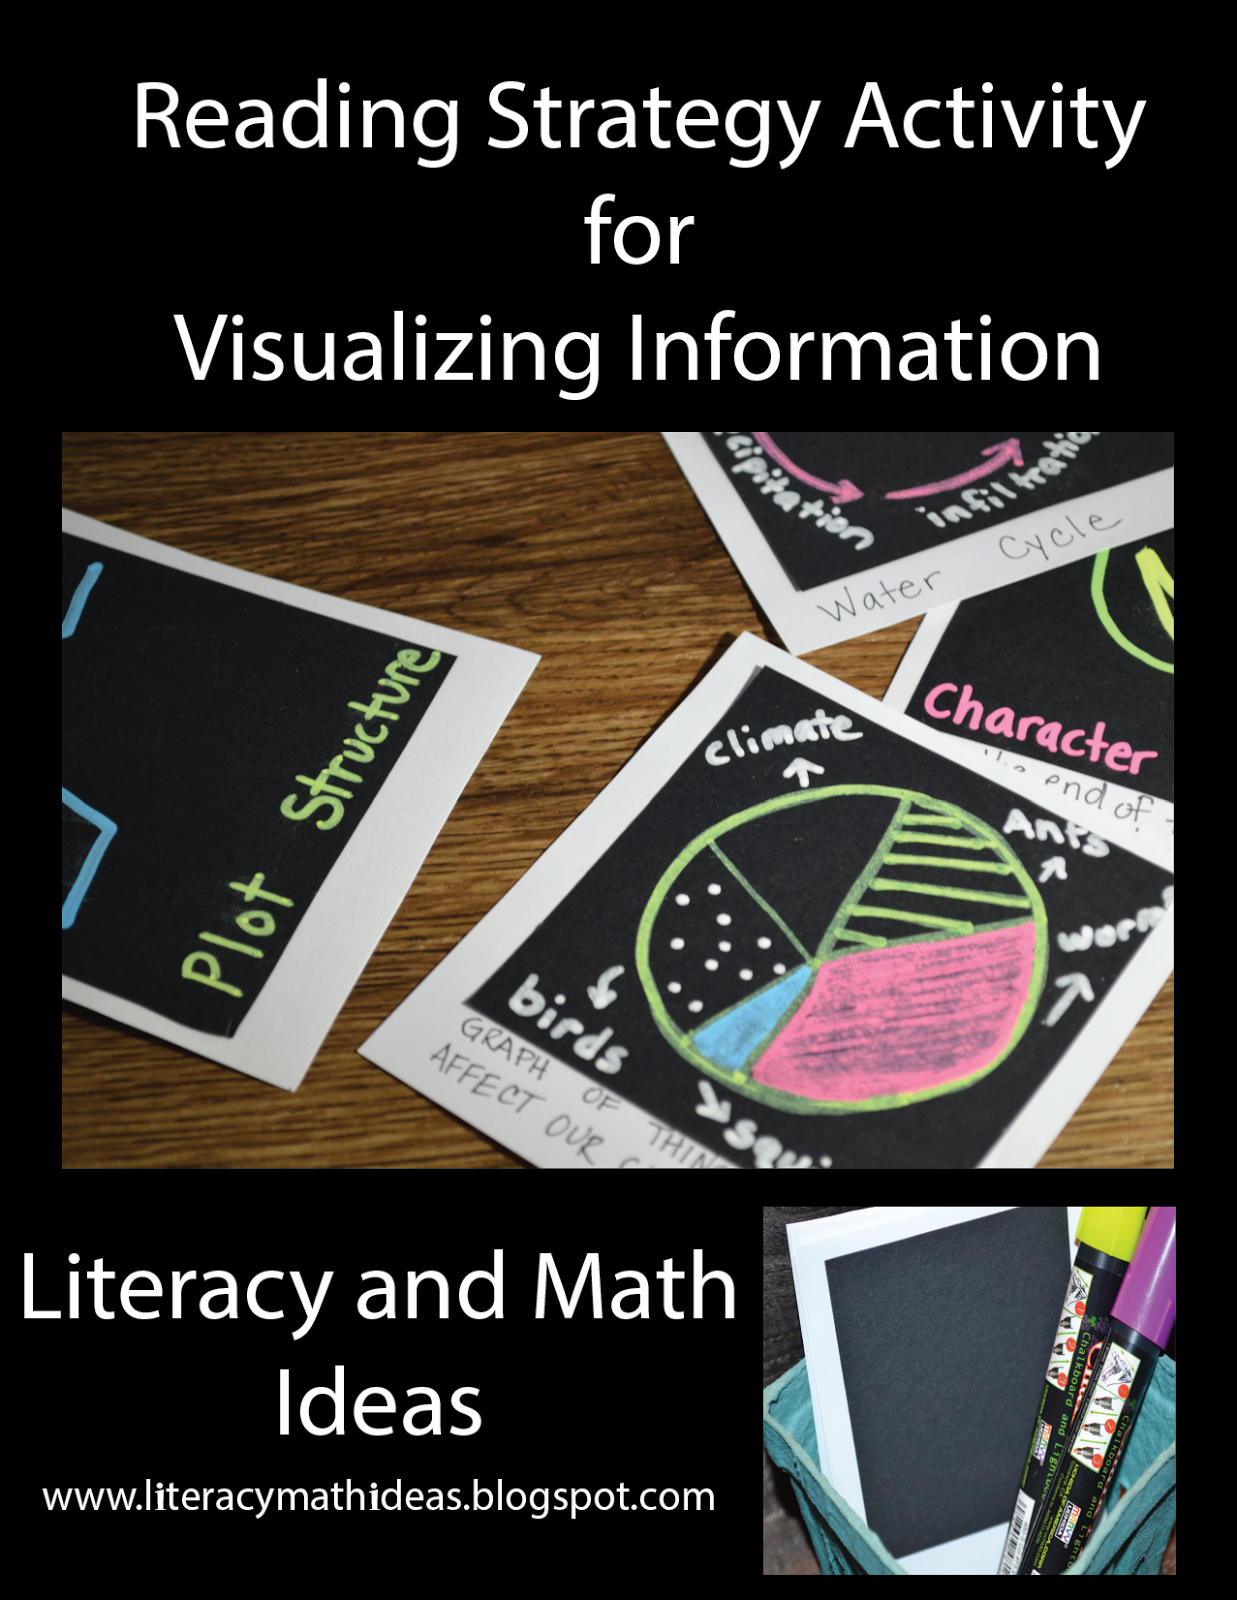 Literacy Amp Math Ideas Reading Strategy Activity Visualizing Information